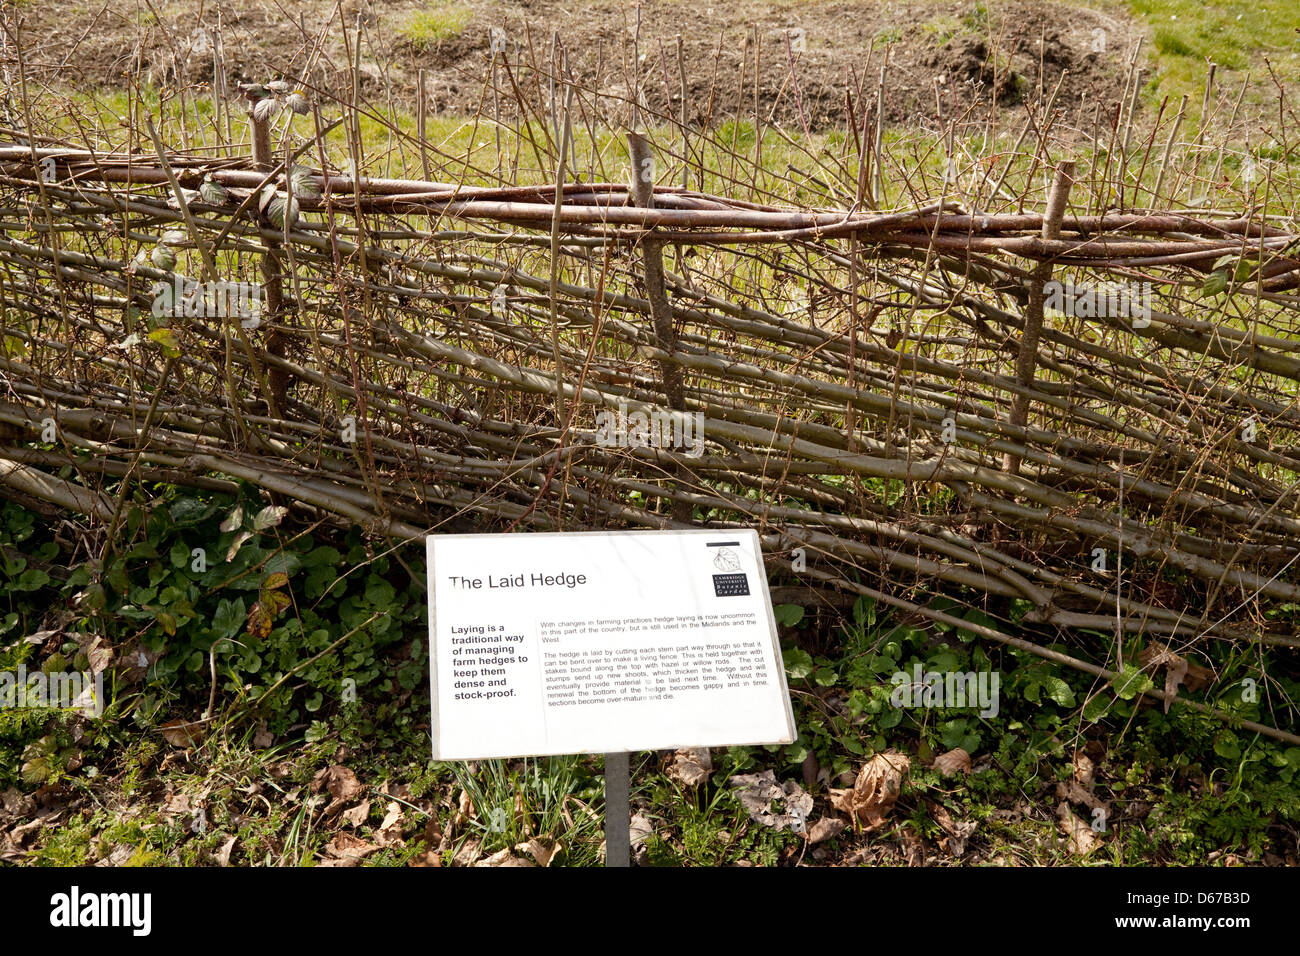 Demonstration of a traditional Laid Hedge, hedging or hedgerow, Cambridge Botanical Garden, UK - Stock Image